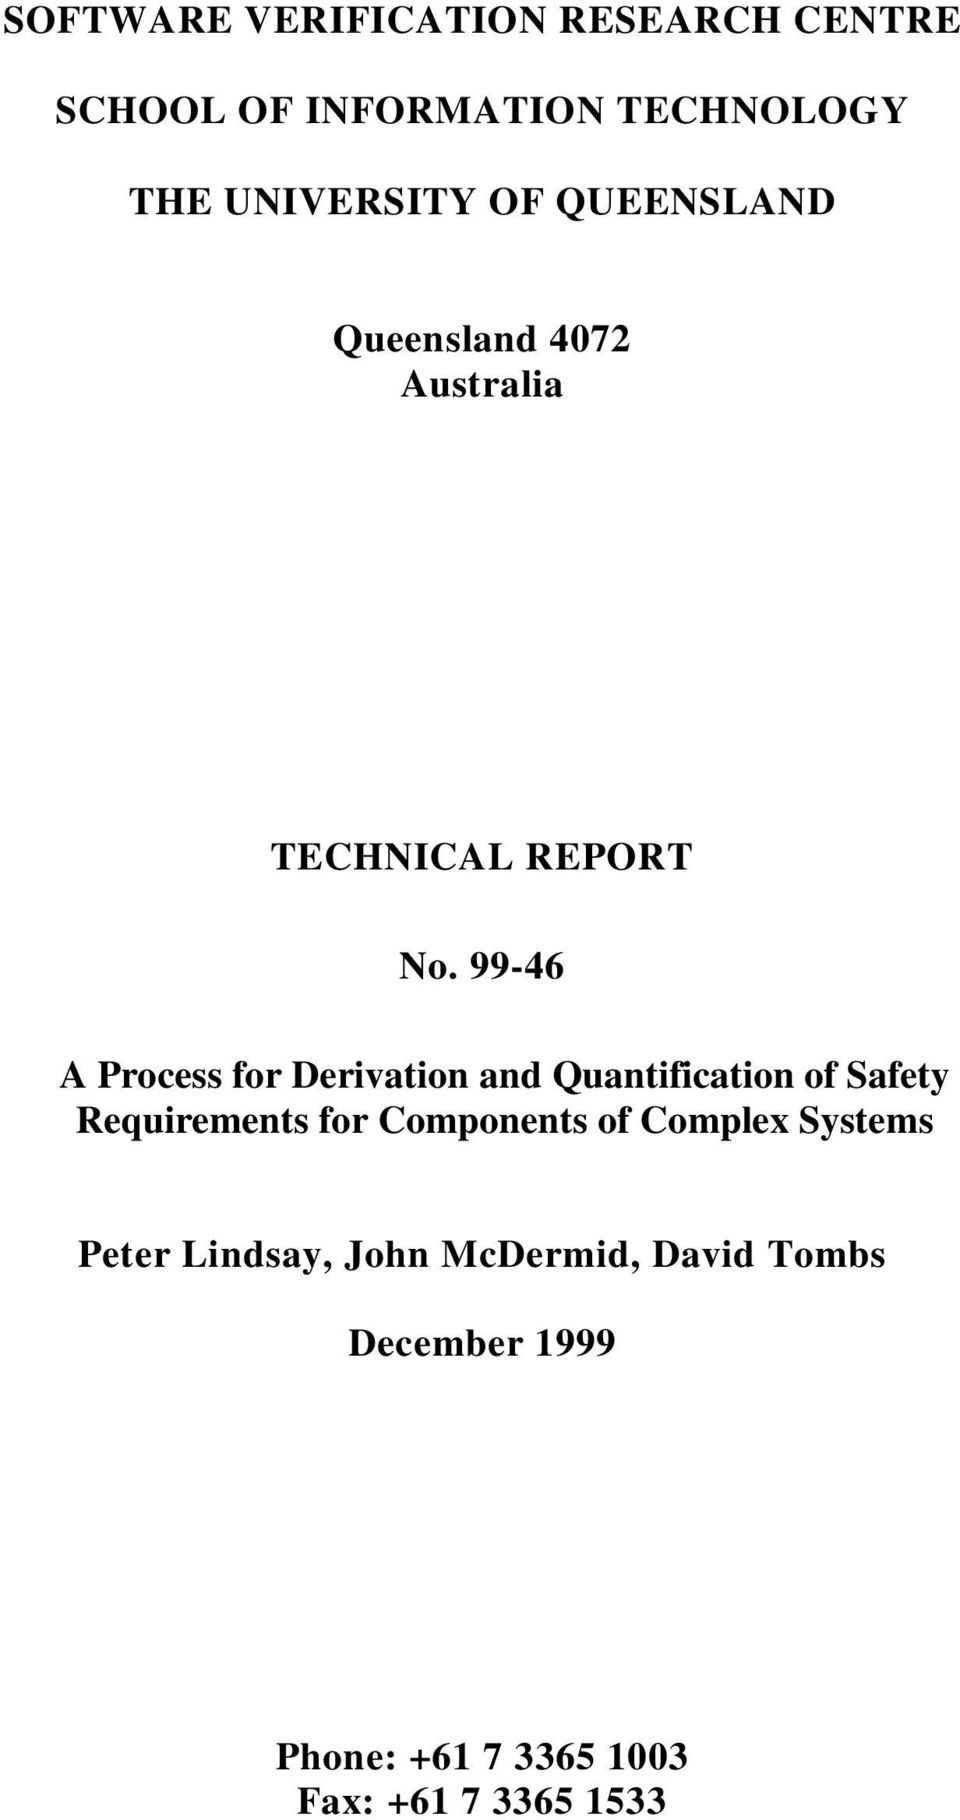 99-46 A Process for Derivation and Quantification of Safety Requirements for Components